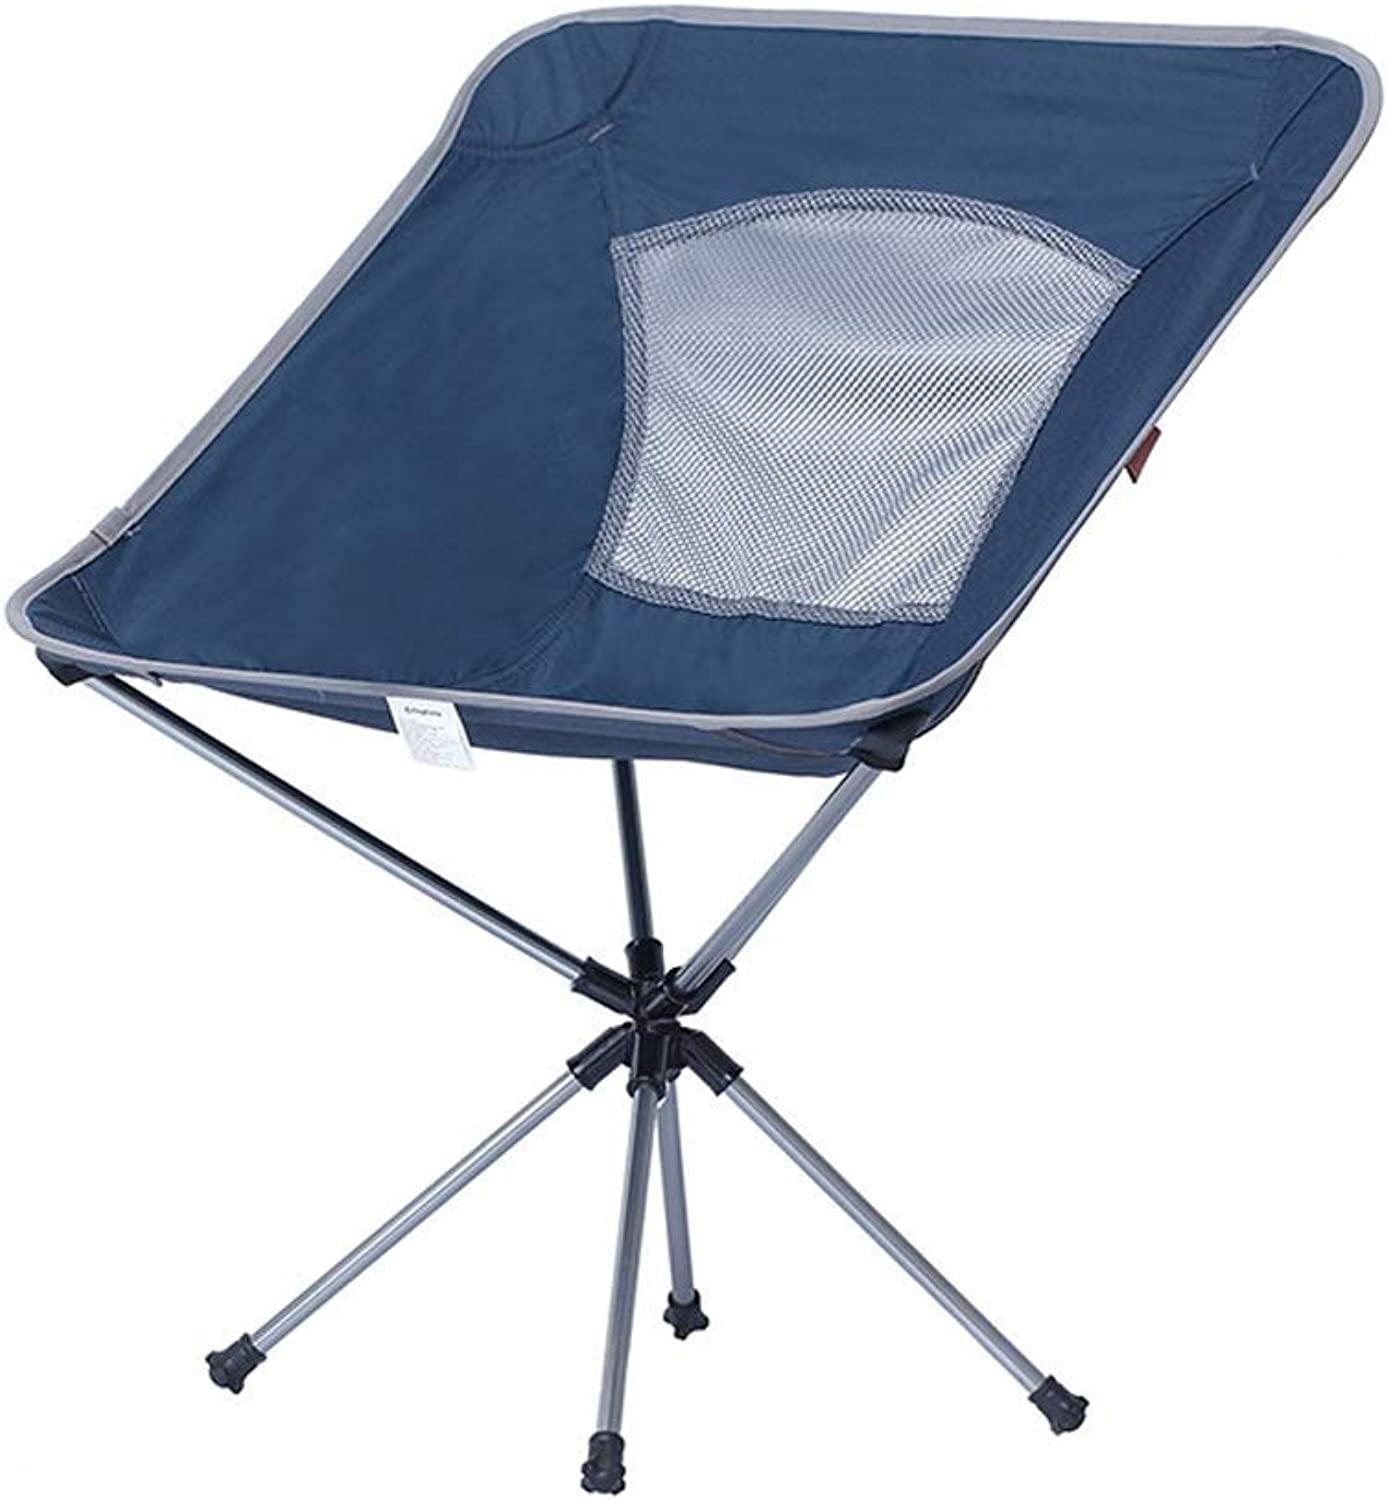 Camping Folding Chairs Compact Ultralight Aluminum Alloy Bracket Portable Festival Fishing Seat,4 colors (color   C)